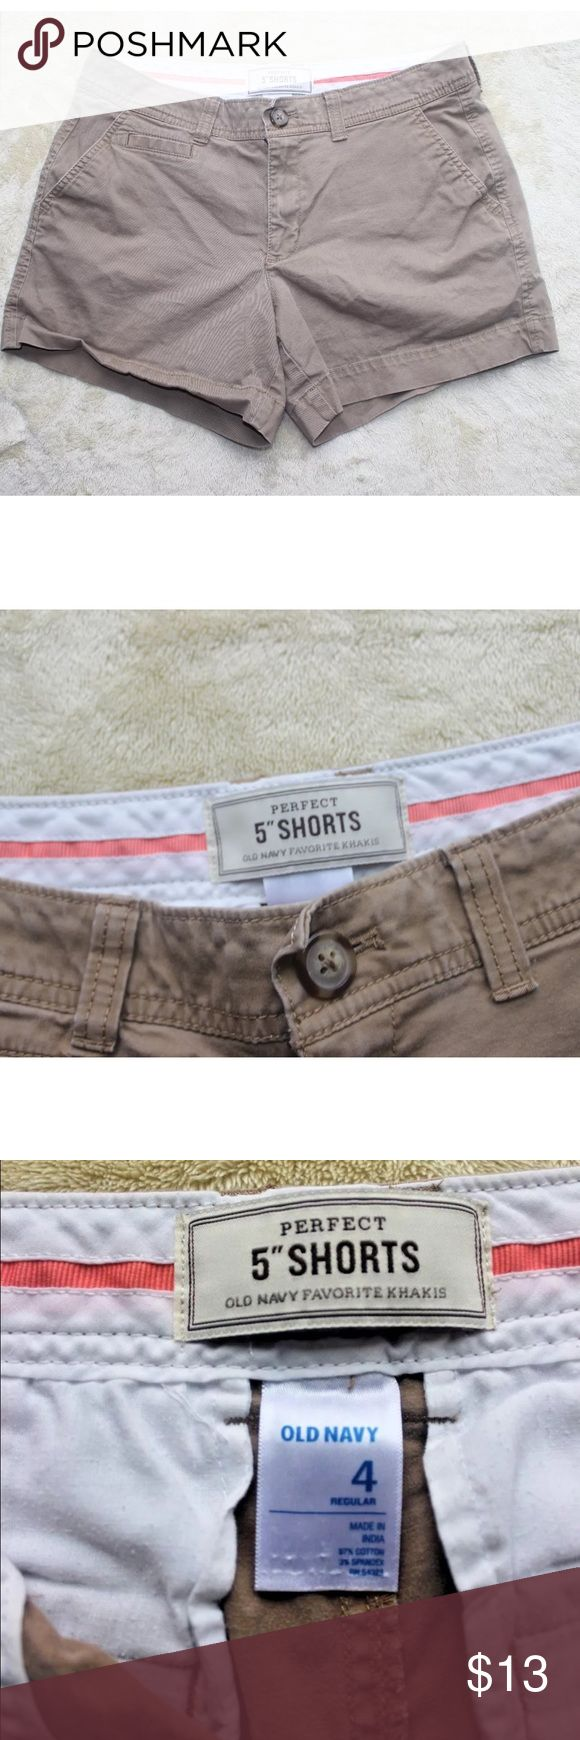 """Old Navy Beige Khaki 5"""" short women's size 4 You Are Buying Old Navy Beige Khaki 5"""" short women's size 4 It is in great pre-own Condition.  Fast shipping in the USA via USPS.  FEEDBACK: we strive to earn positive 5 star feedback for all items. And we will leave the same for all good buyers.  If you feel we deserve anything less please send us a message before leaving anything less or opening a case and we will fix the issue within 24 hours.   Thank you!!! Old Navy Shorts Skorts"""